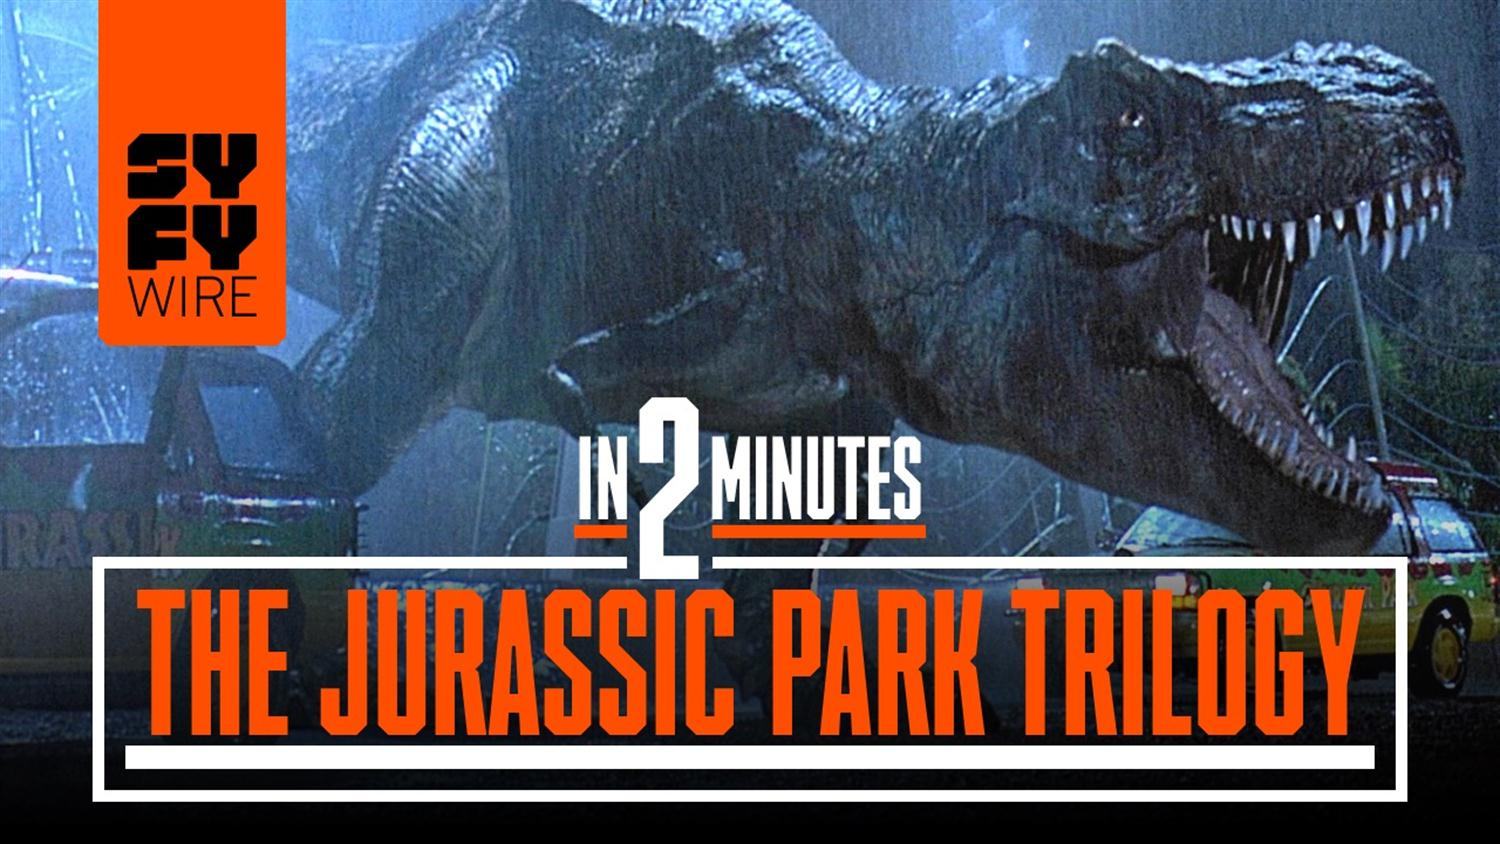 Jurassic Park Parts 1-3 In 2 Minutes